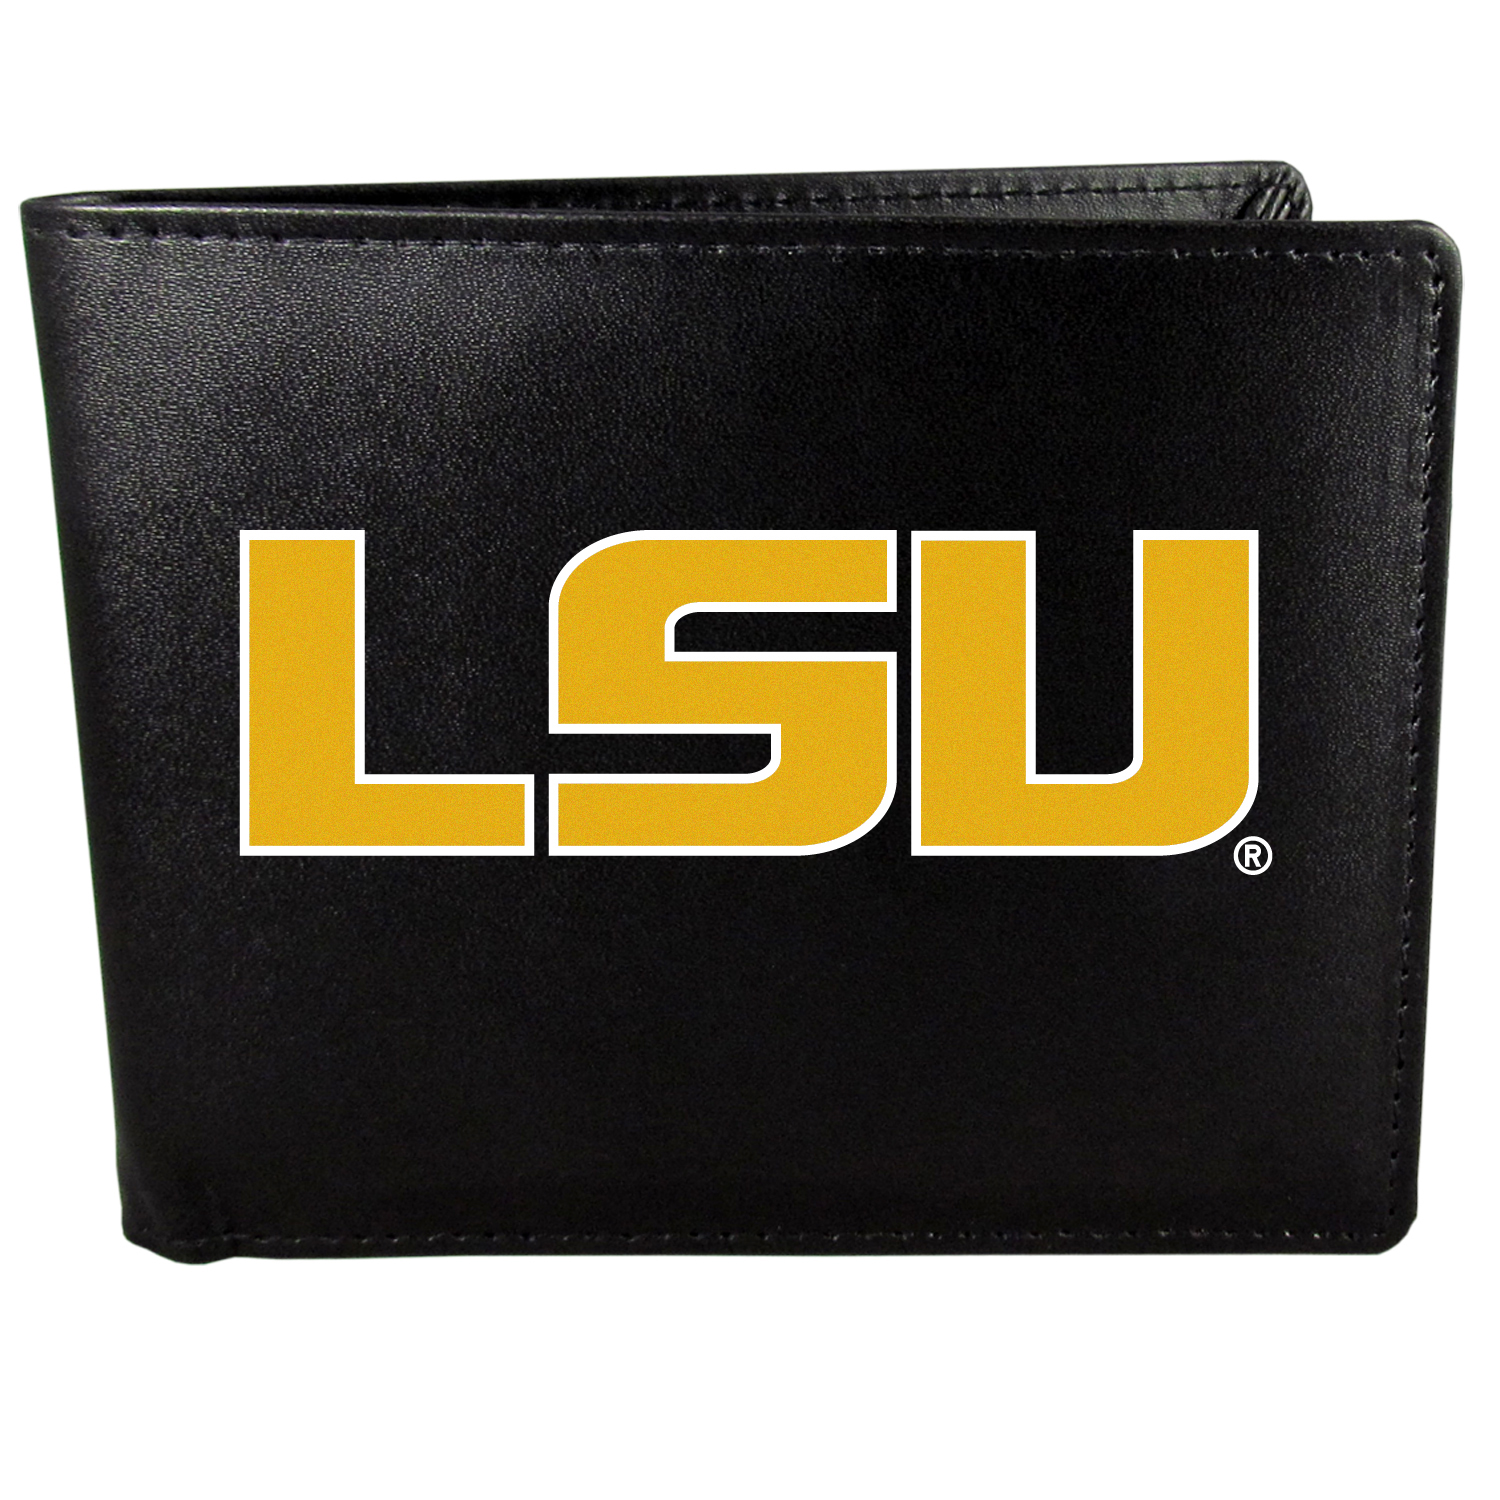 LSU Tigers Bi-fold Wallet Large Logo - Sports fans do not have to sacrifice style with this classic bi-fold wallet that sports the LSU Tigers extra large logo. This men's fashion accessory has a leather grain look and expert craftmanship for a quality wallet at a great price. The wallet features inner credit card slots, windowed ID slot and a large billfold pocket. The front of the wallet features a printed team logo.